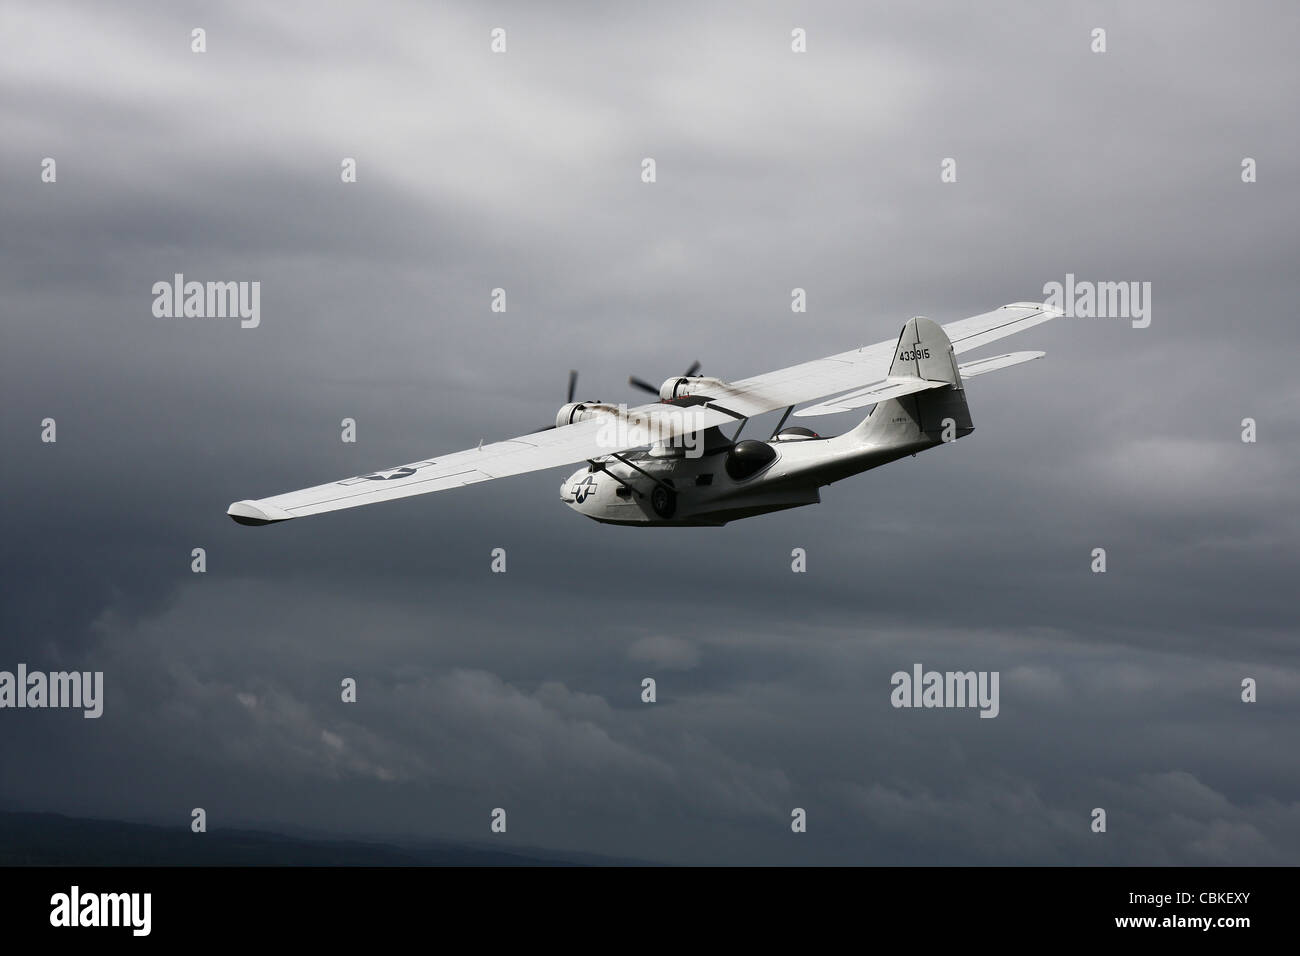 Consolidated PBY Catalina vintage flying boat in U.S. Army Air Force naval rescue colors. - Stock Image